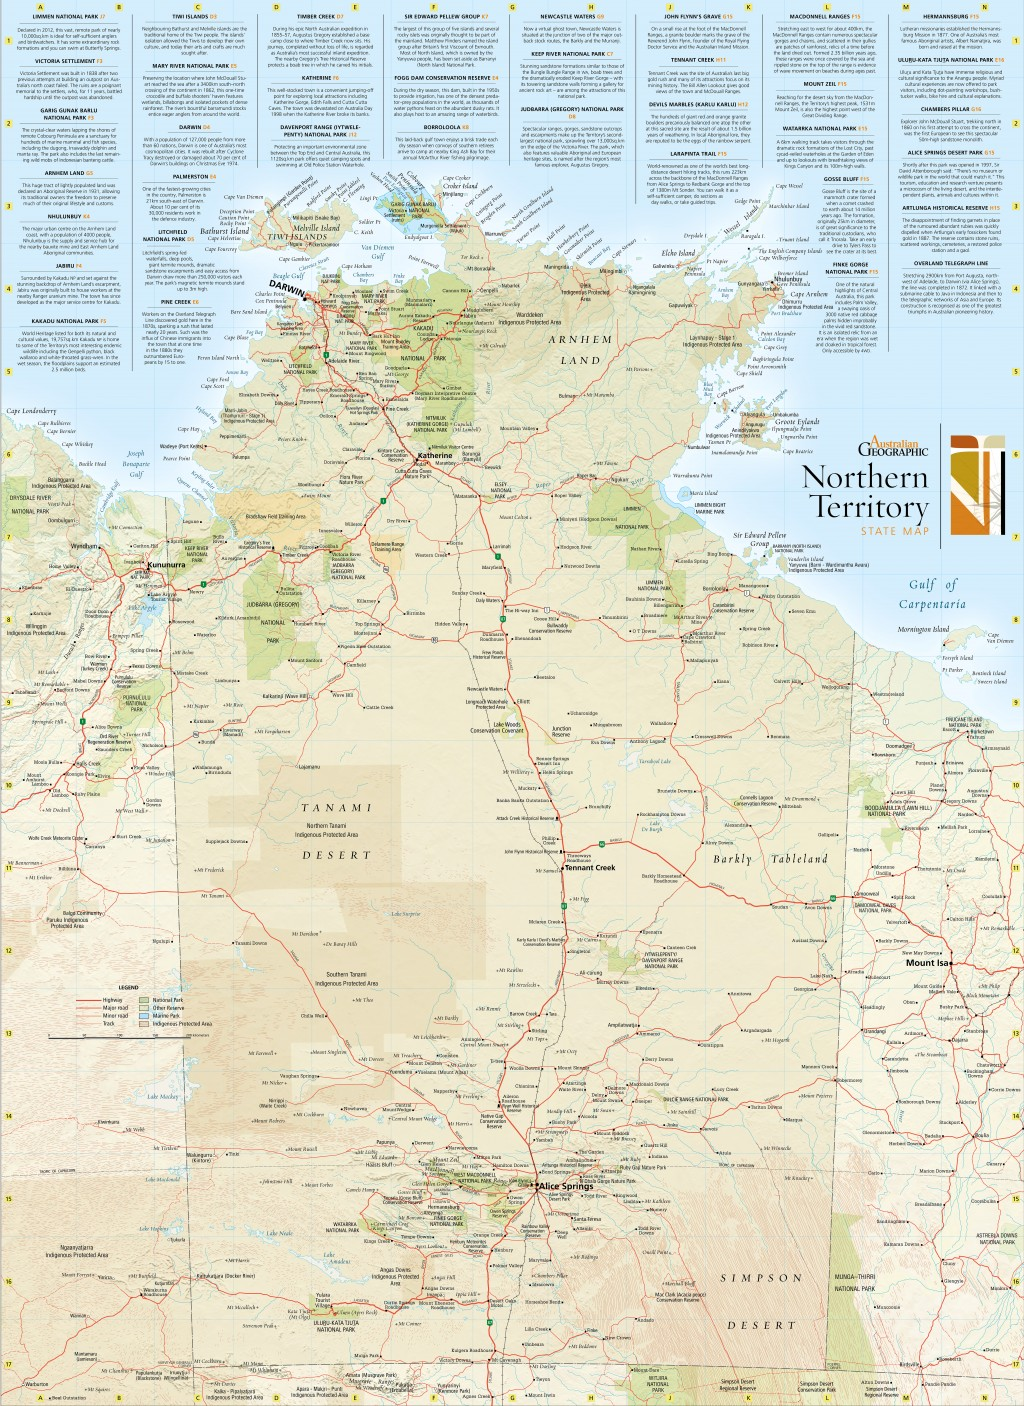 Northern Territory state map Australian Geographic